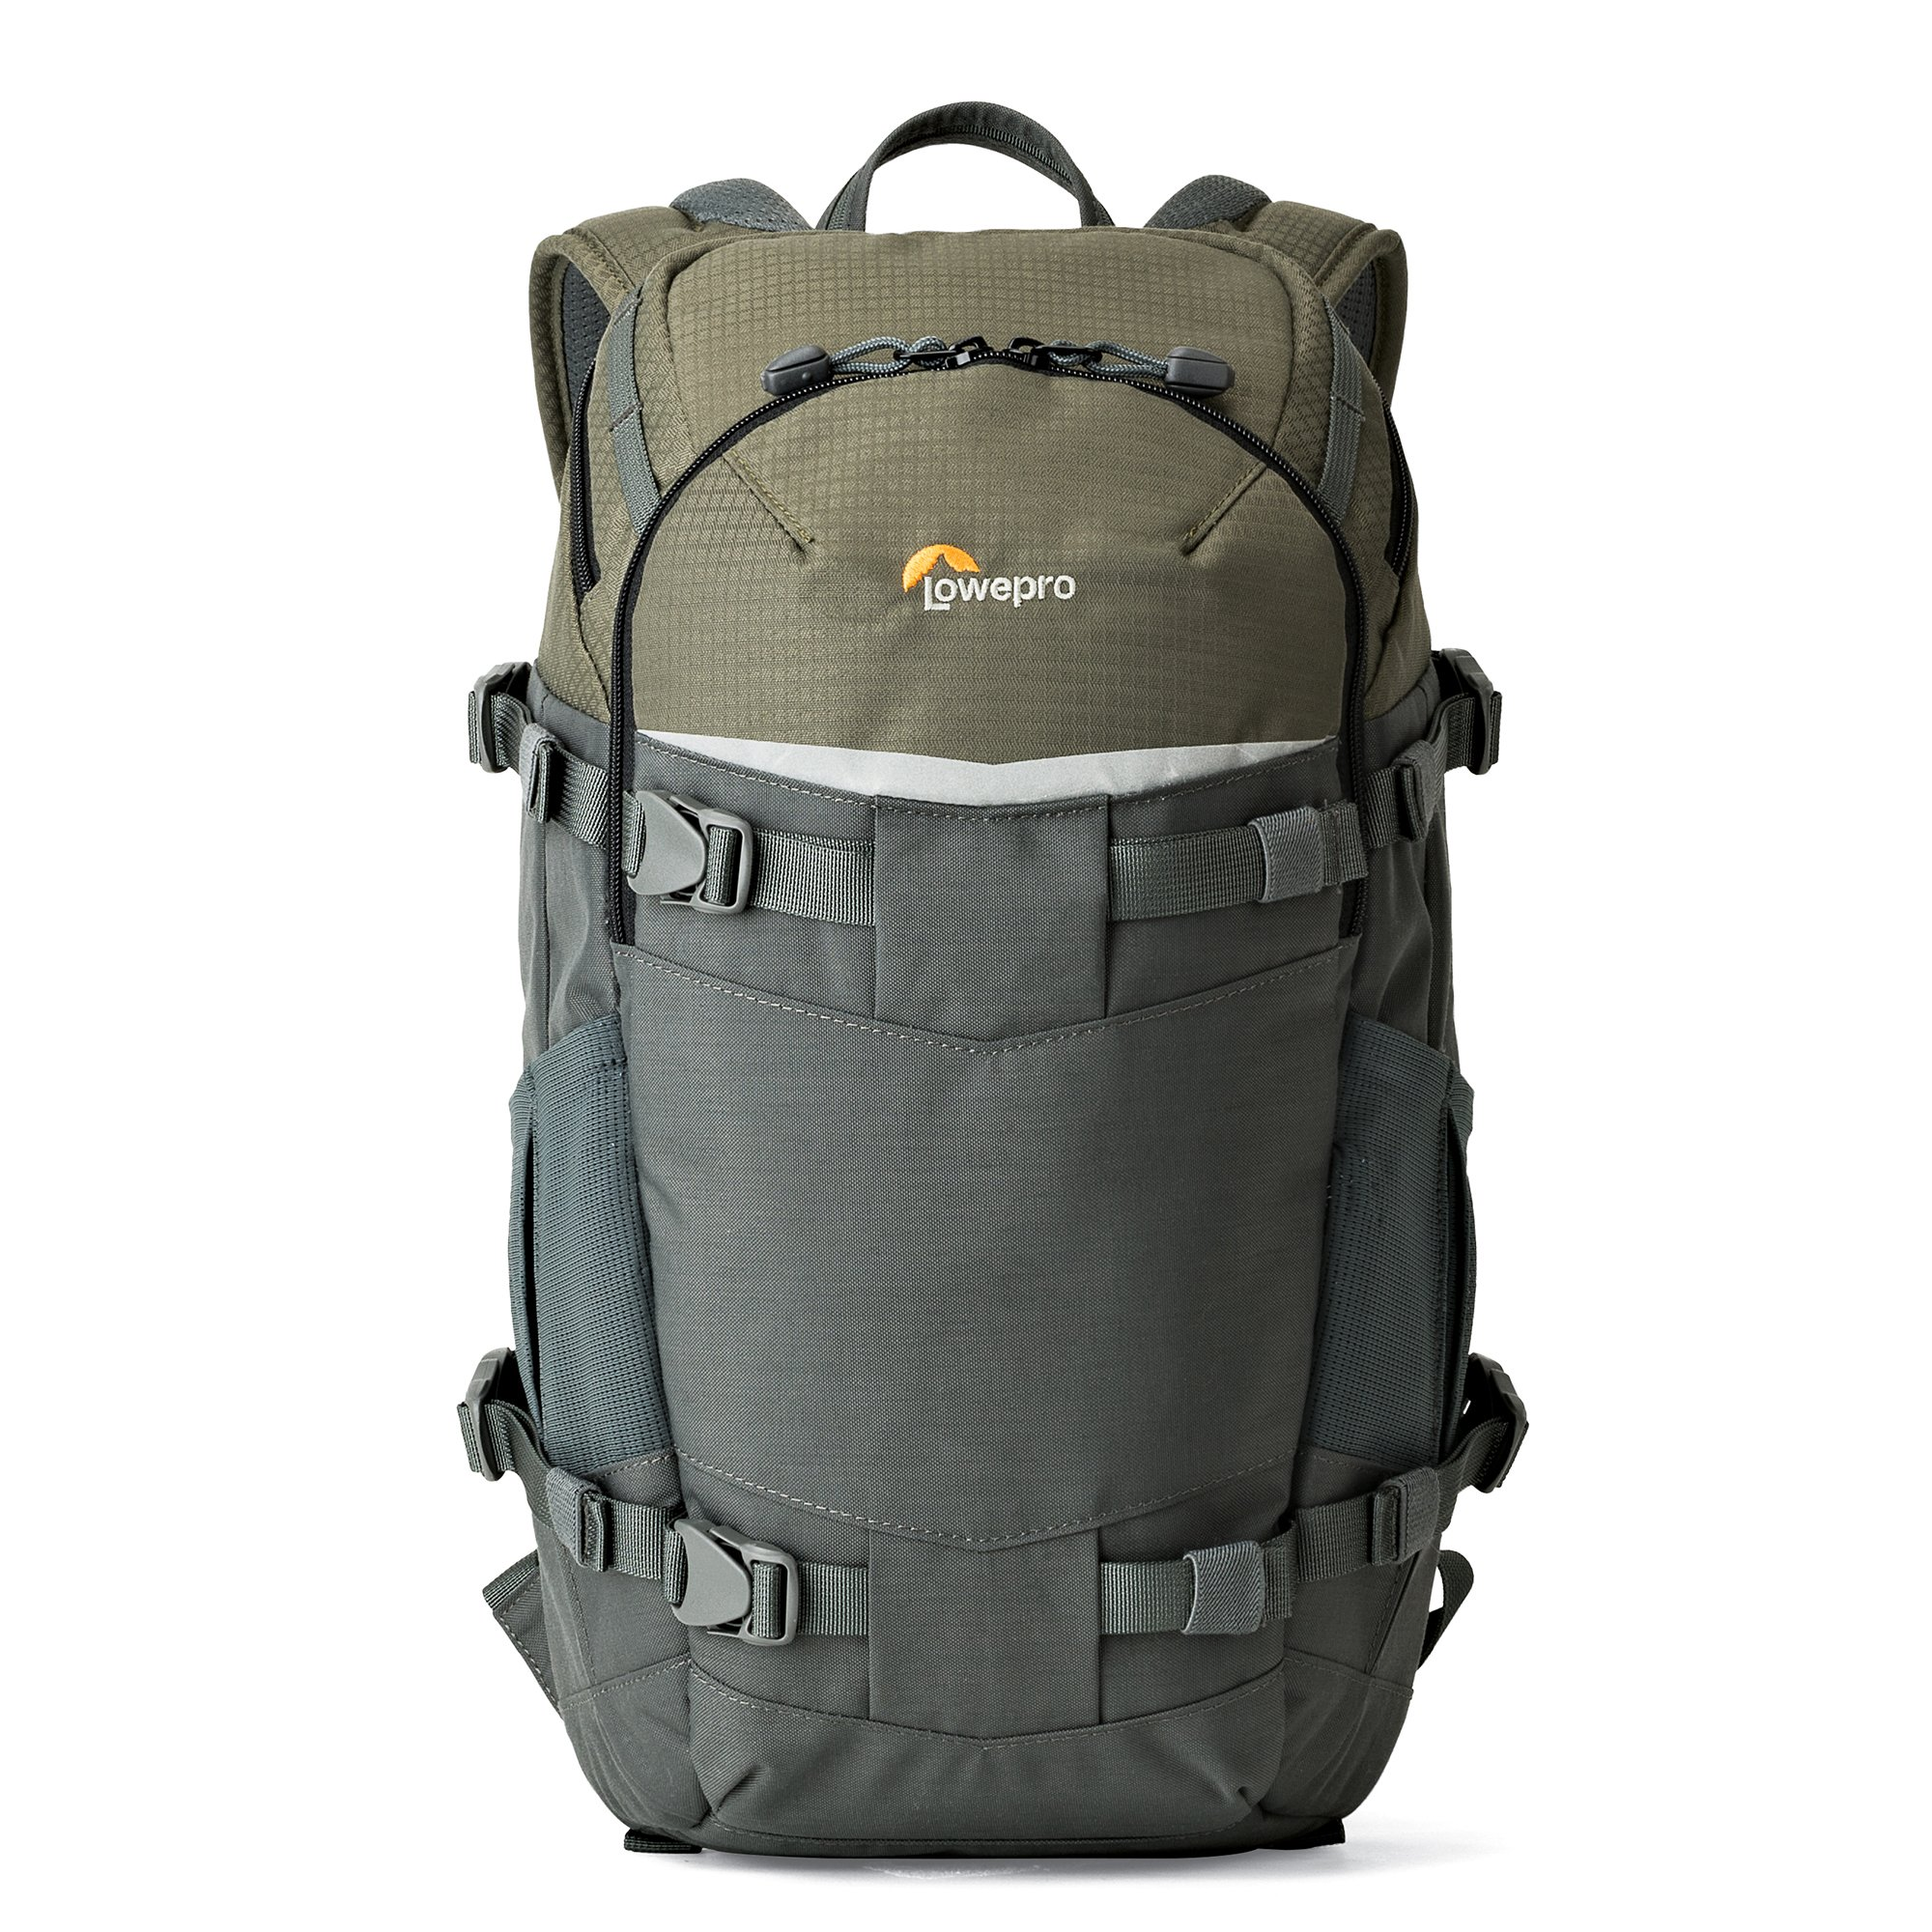 Lowepro Flipside Trek BP 250 AW - Outdoor Camera Backpack for Mirrorless or Compact DSLR w/ Rain Cover and Tablet Pocket.